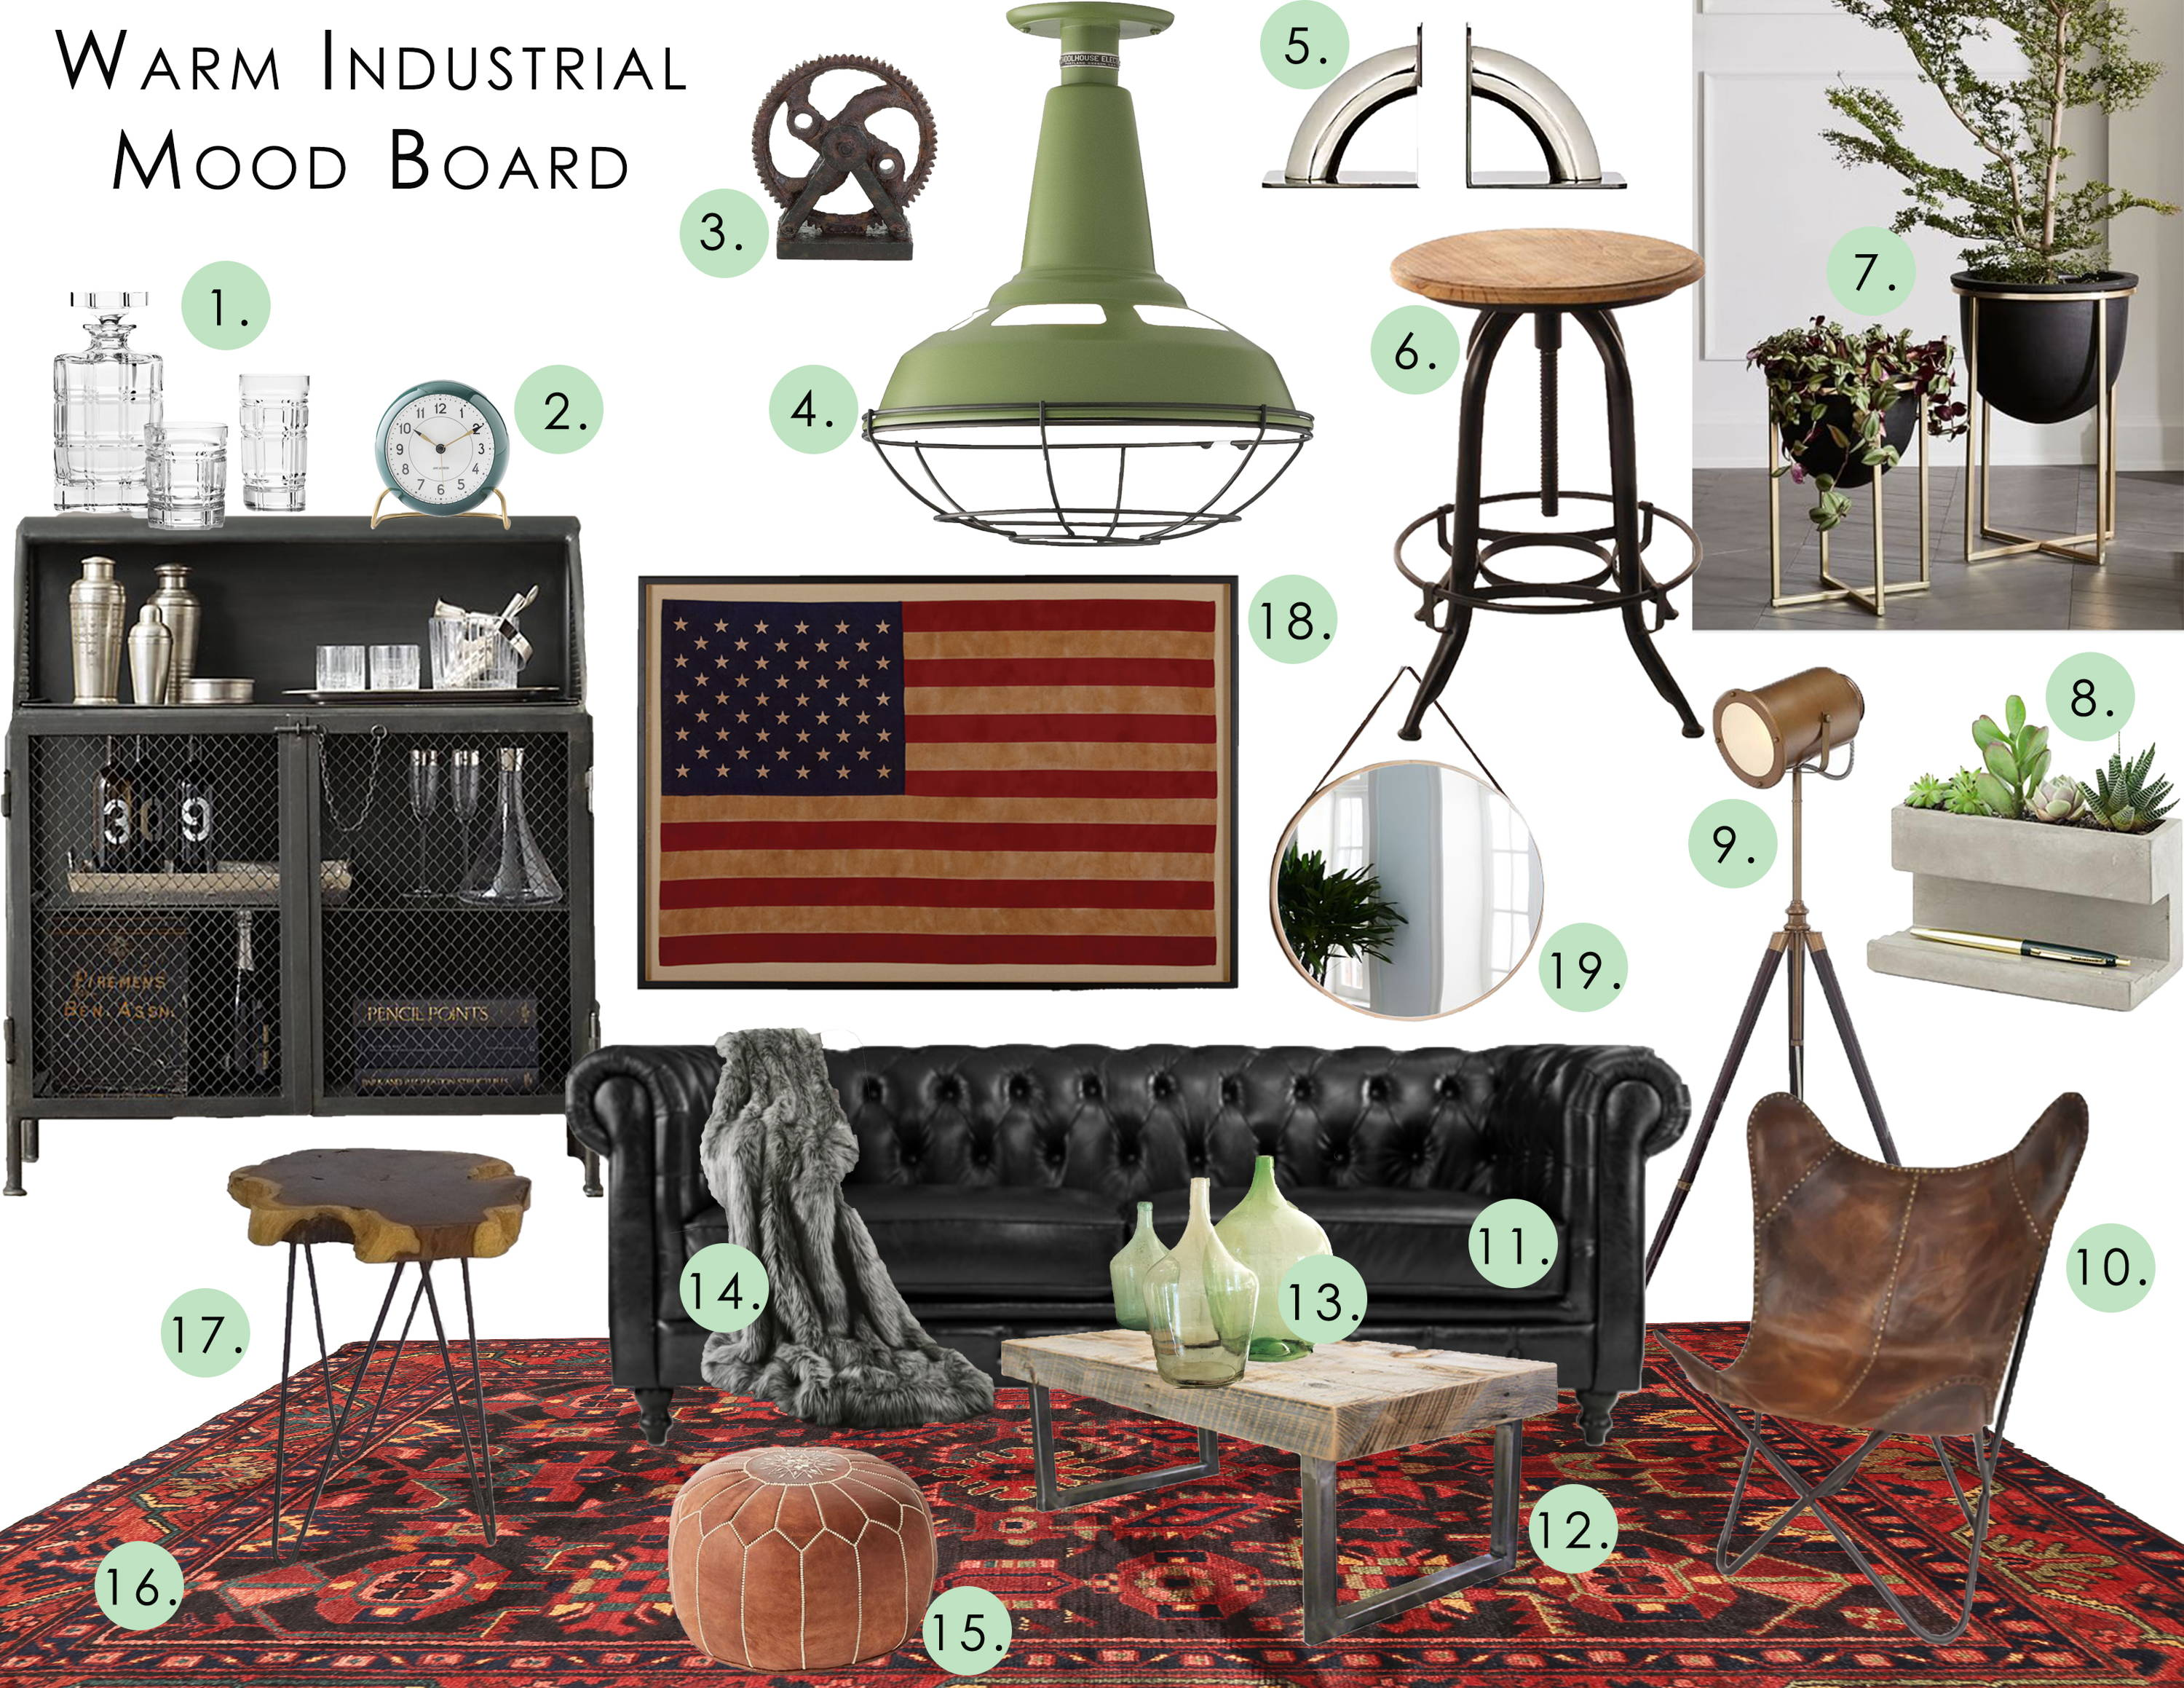 furniture and home decor in the warm industrial design style